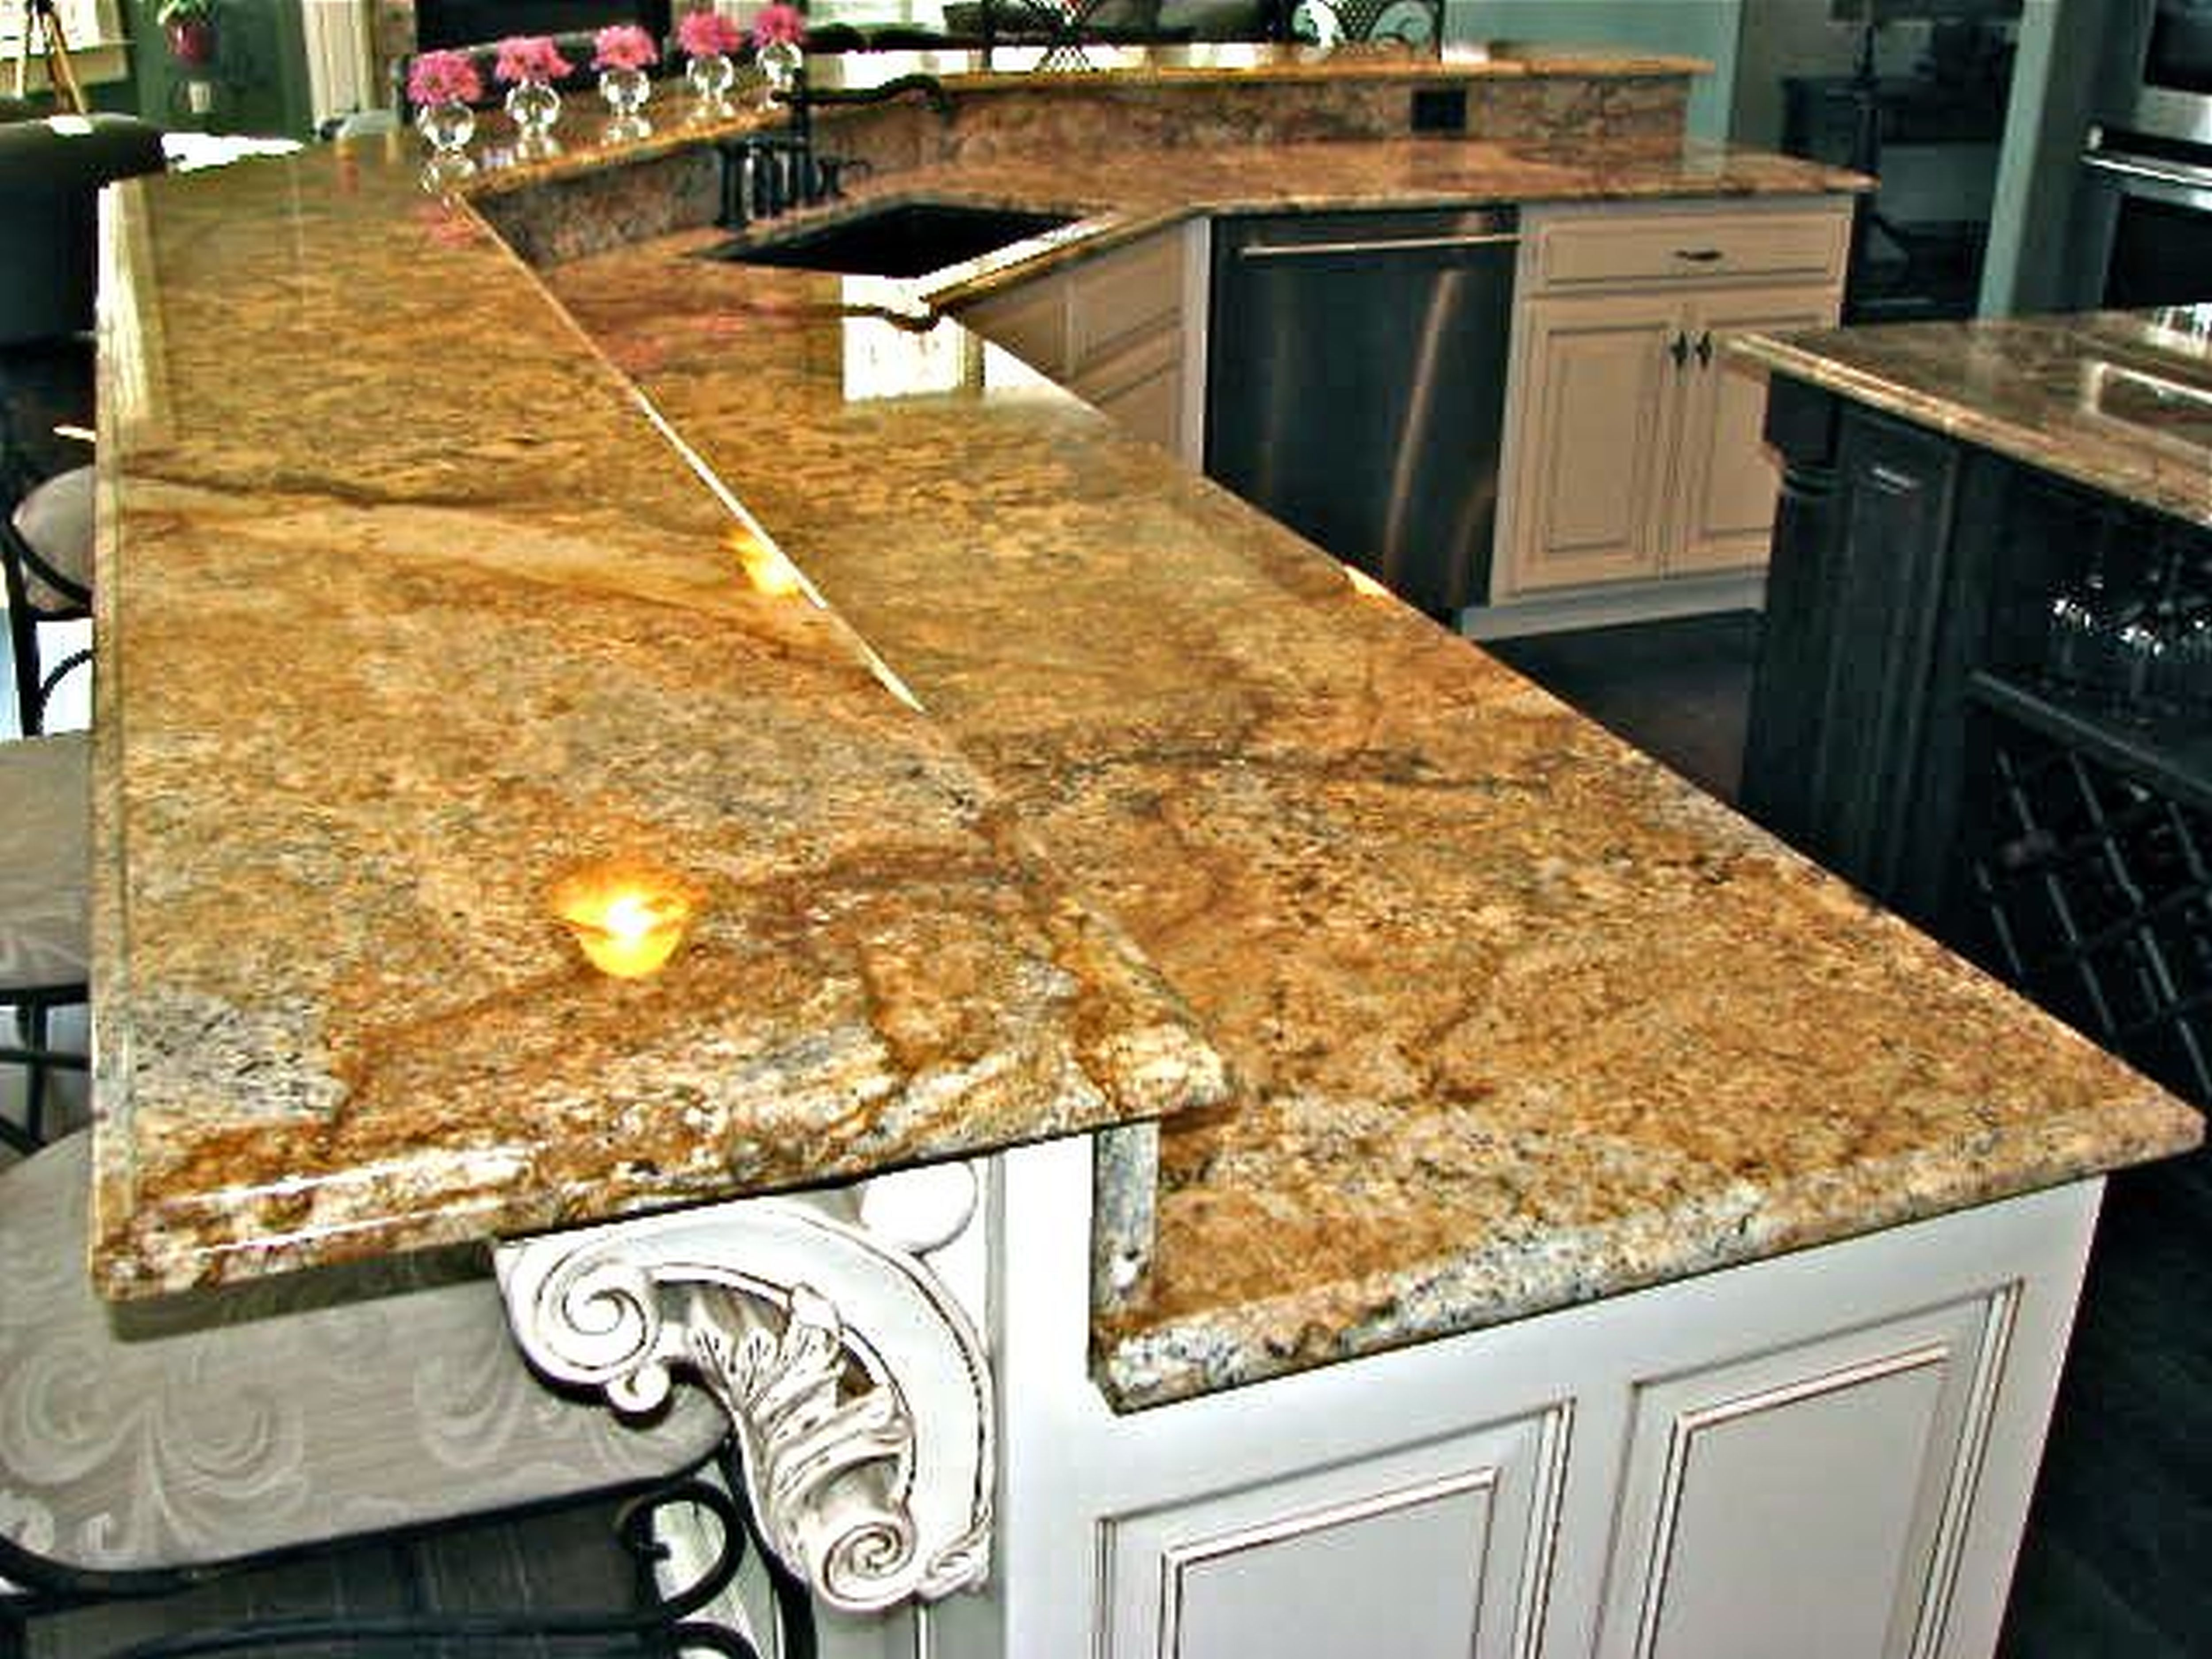 h depot for home resolutions x countertops quartz w average of kitchen lowes ultra hd counter granite footage tops installed per square cost kitchens phoenix